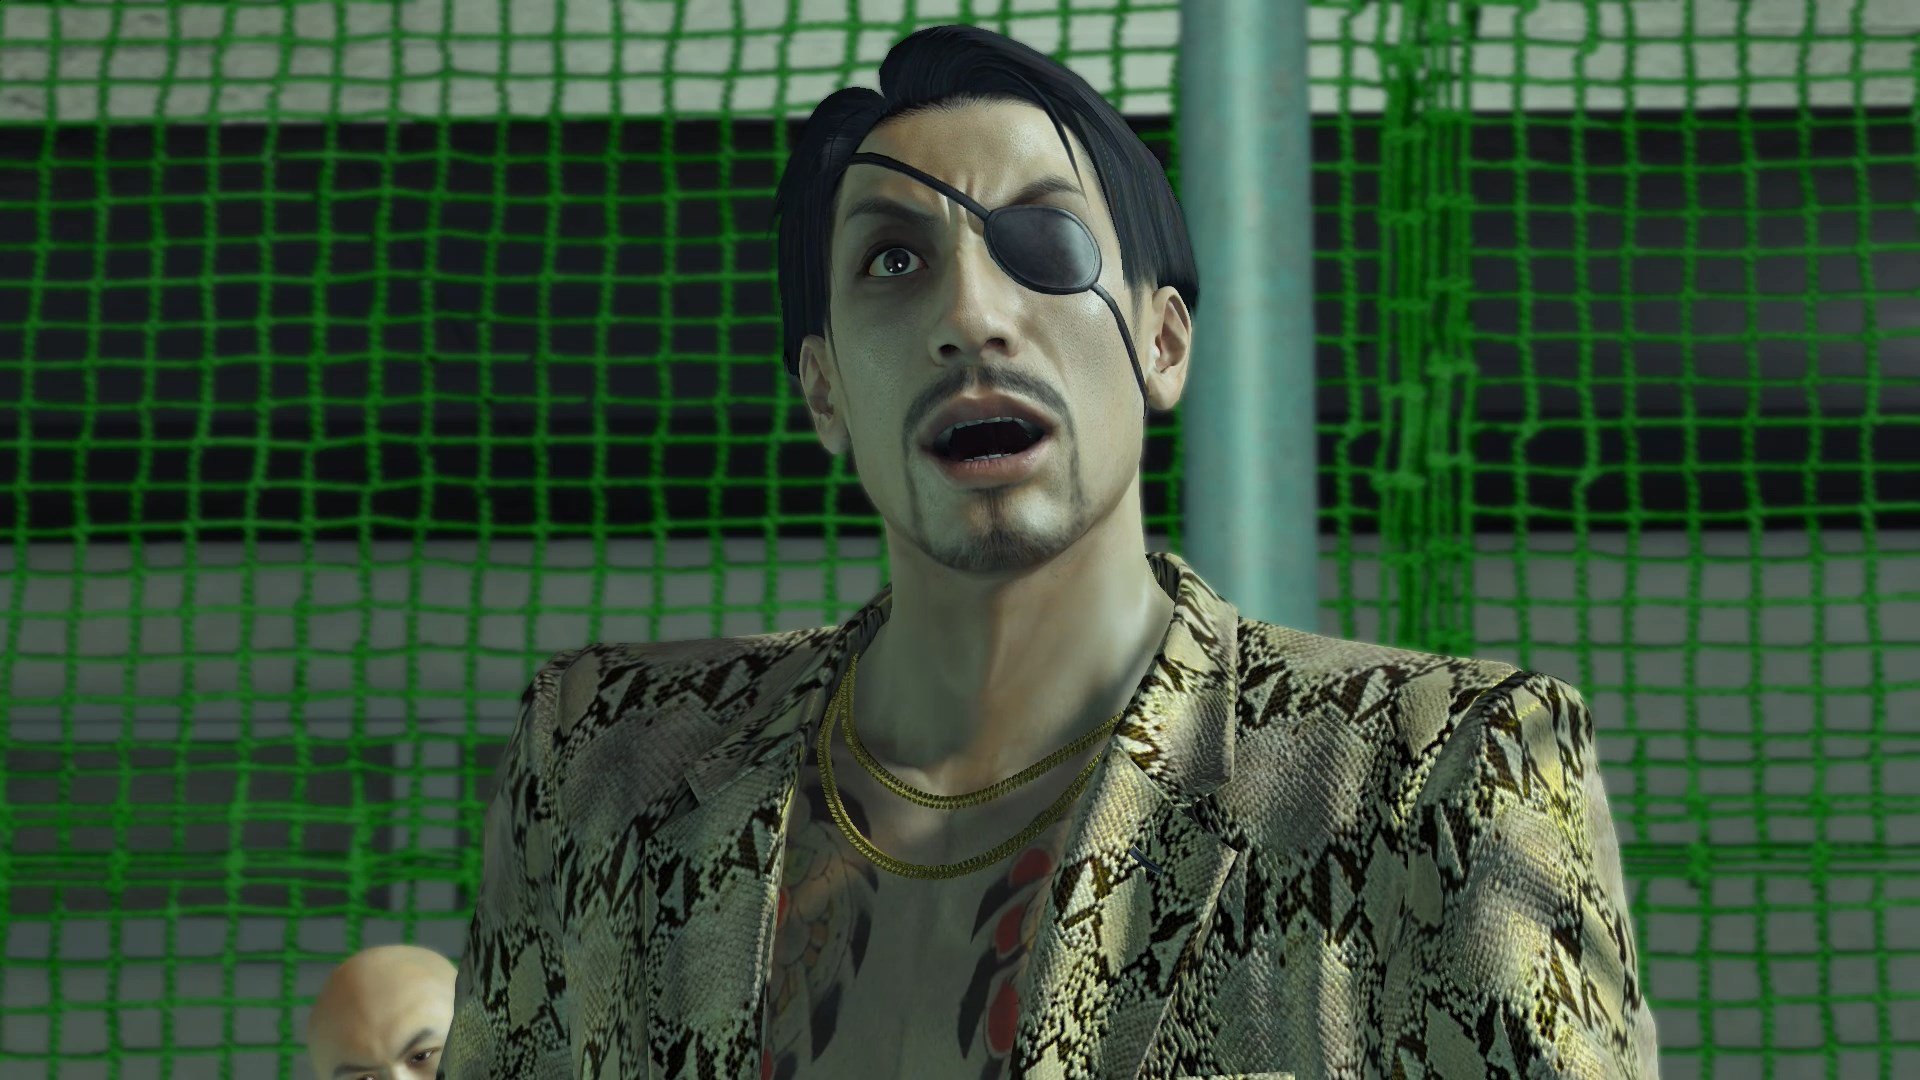 majima-everywhere-header.jpg